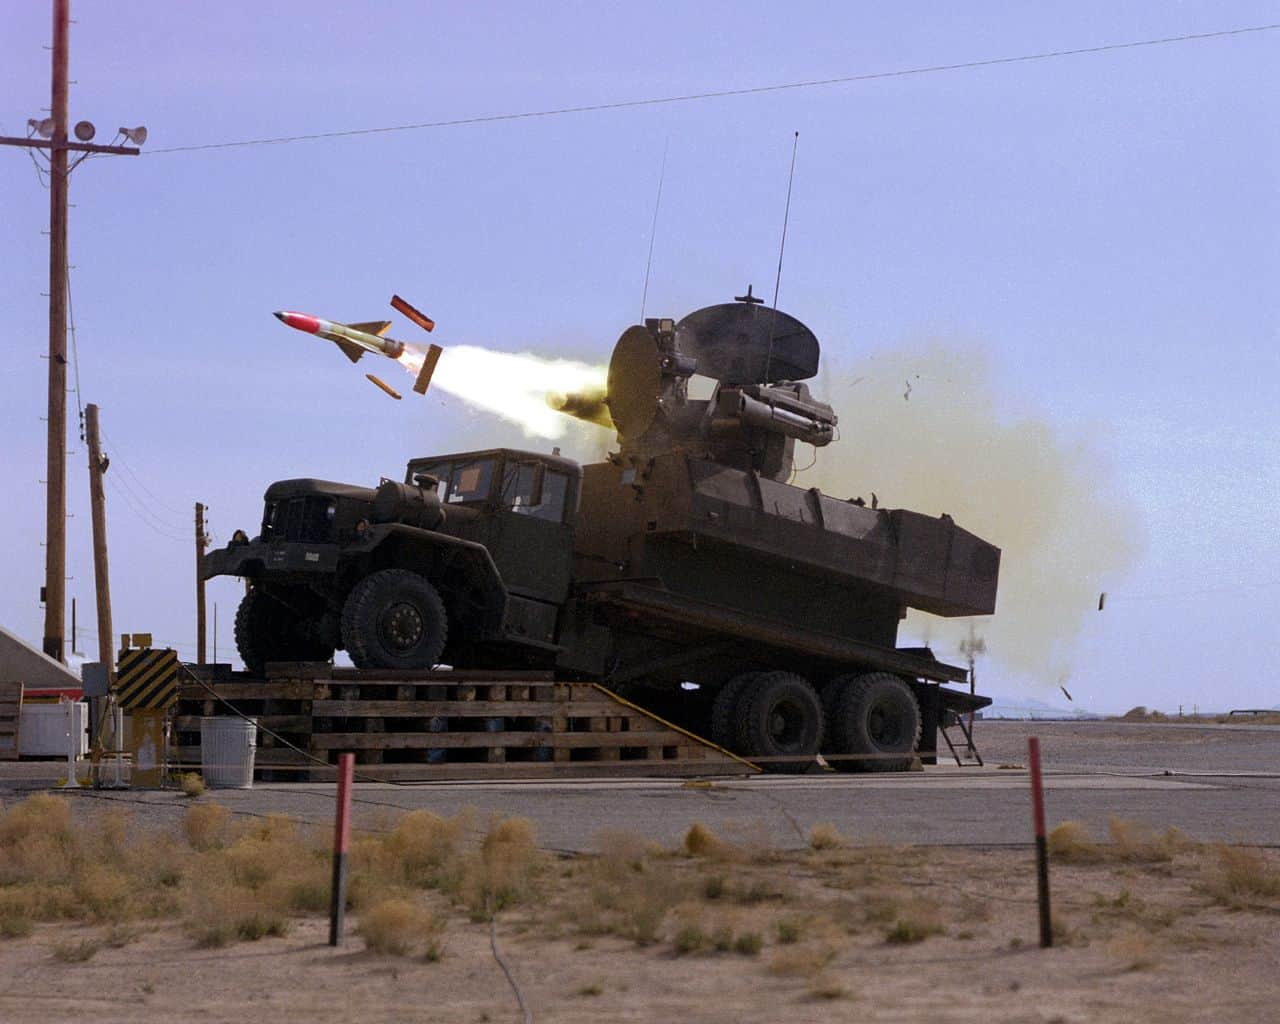 6 ways the US could beef up its short-range air defense